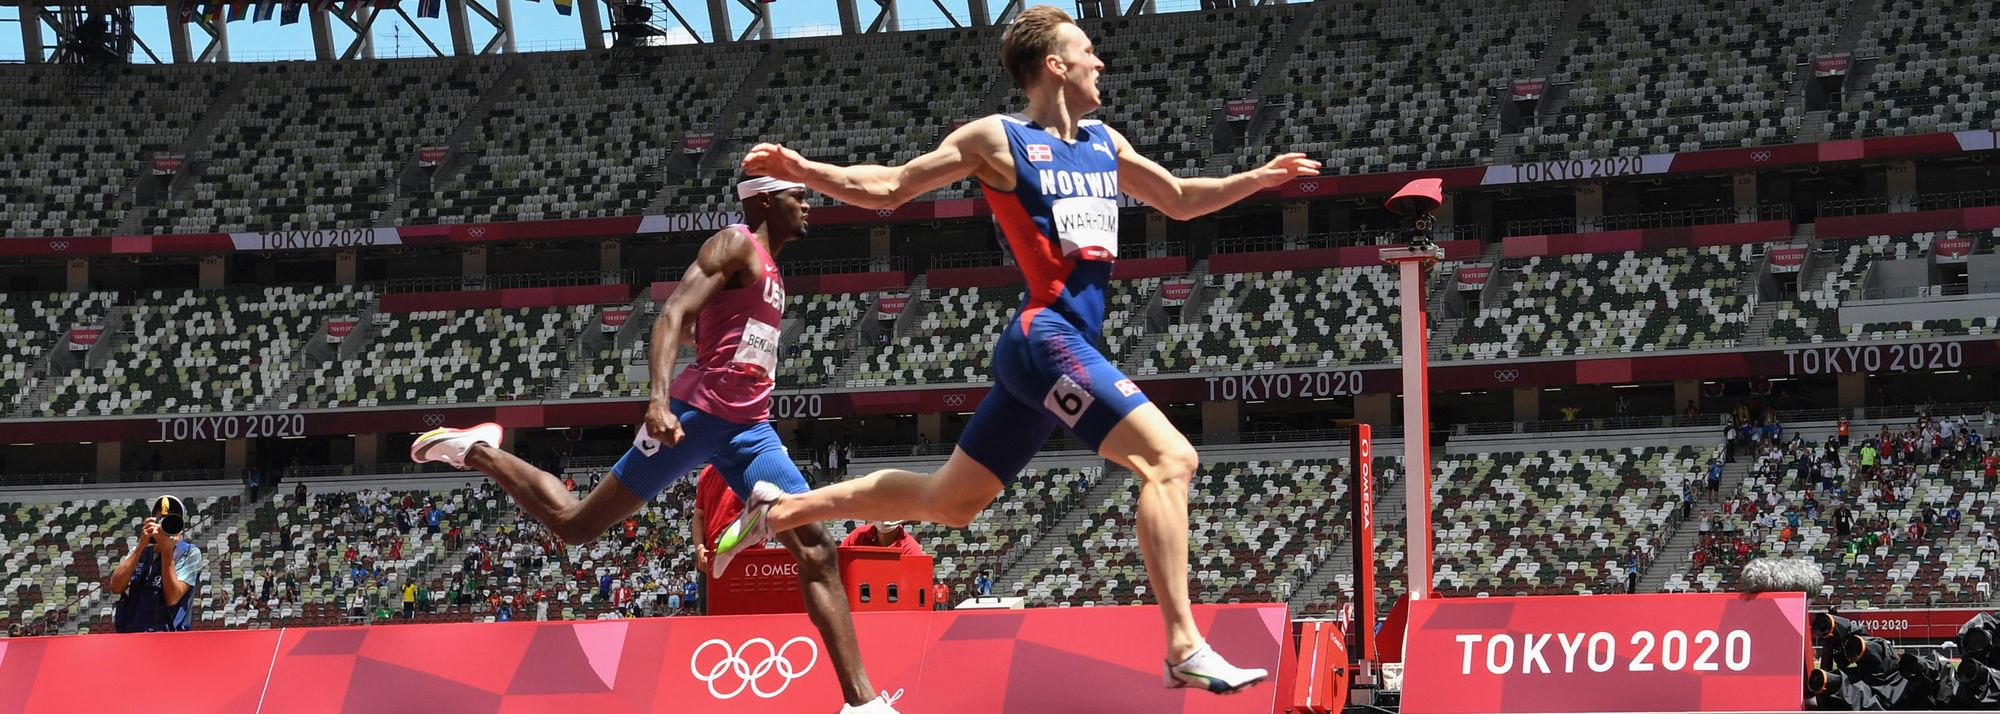 Breathtaking. Stunning. Epic. There aren't enough superlatives to describe the men's 400m hurdles final on Tuesday (3) at the Tokyo Olympic Games.